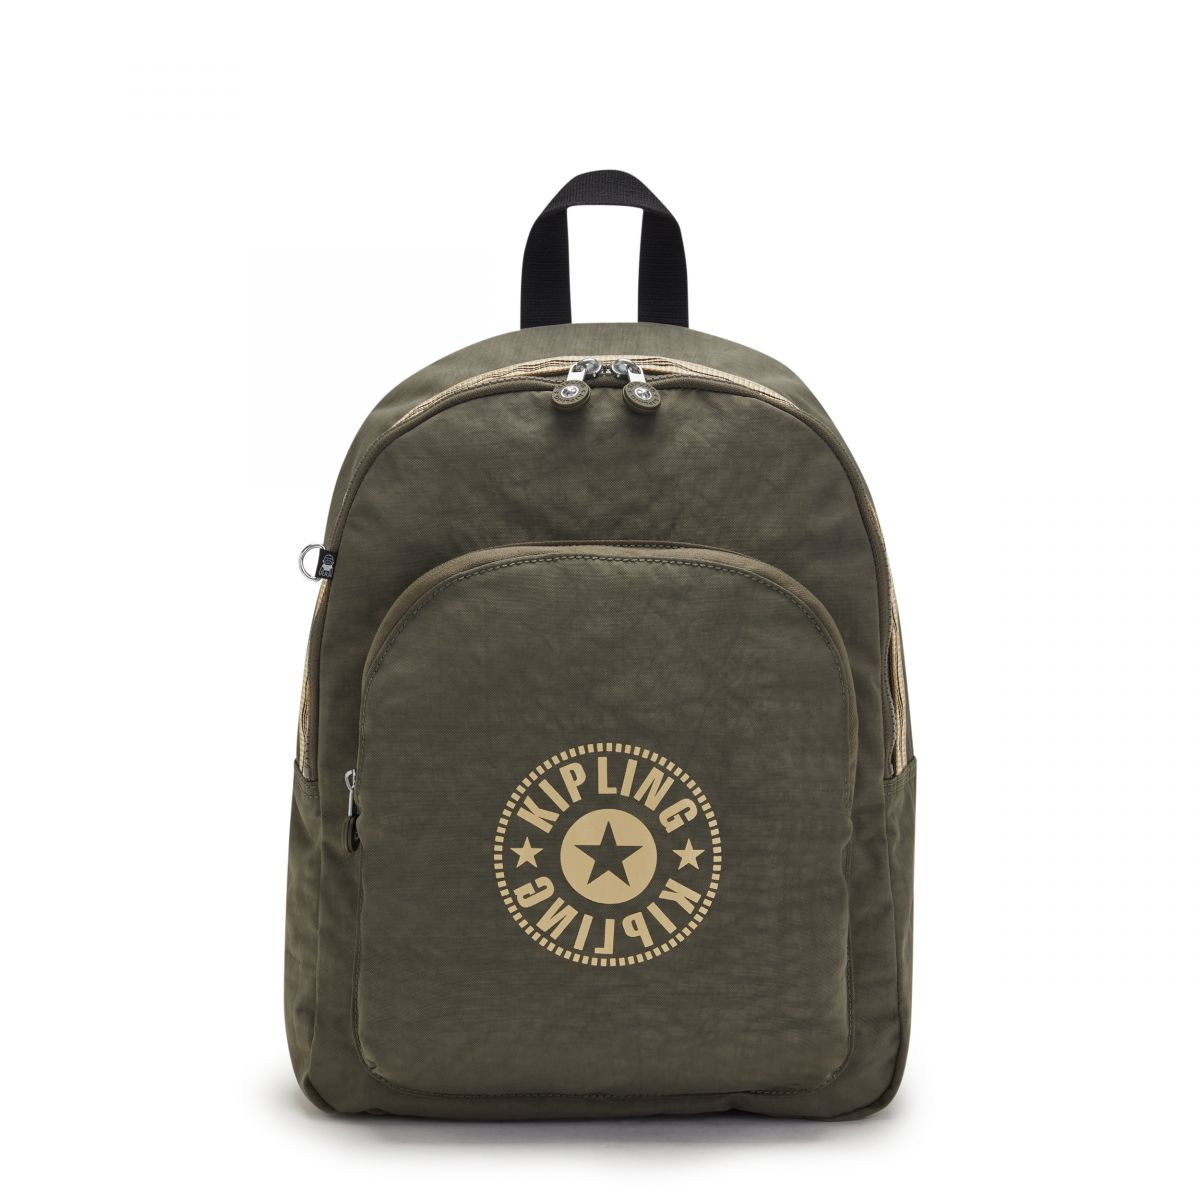 CURTIS M BACKPACKS by Kipling - Front view